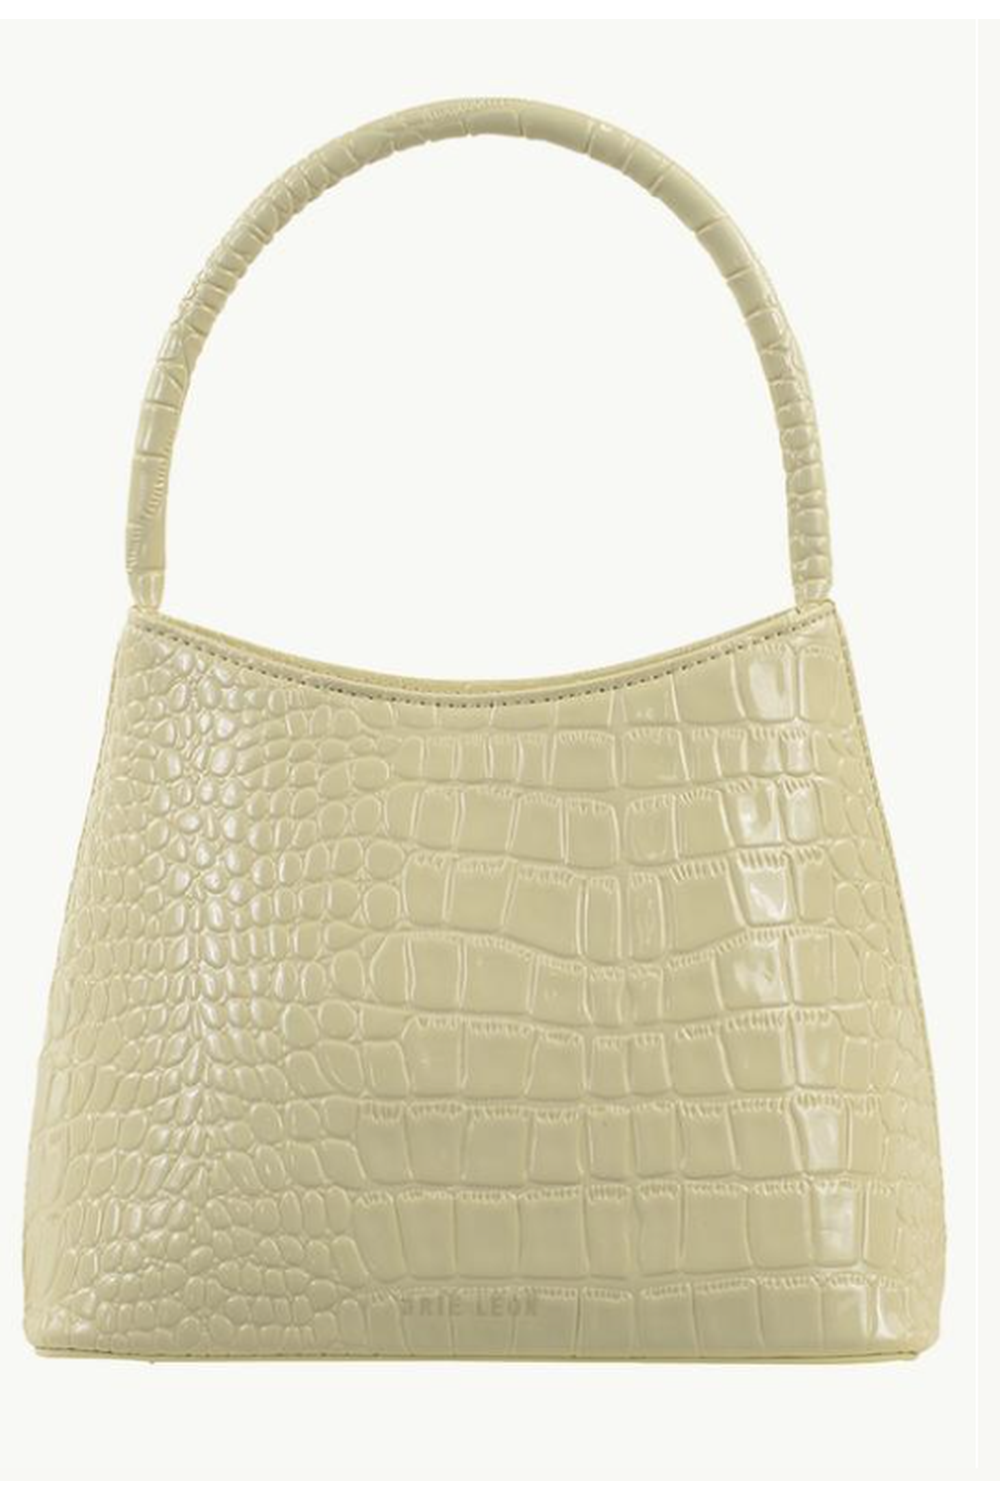 The Chloe Bag / Bone oily Croc | Brie Leon | Mad About The Boy